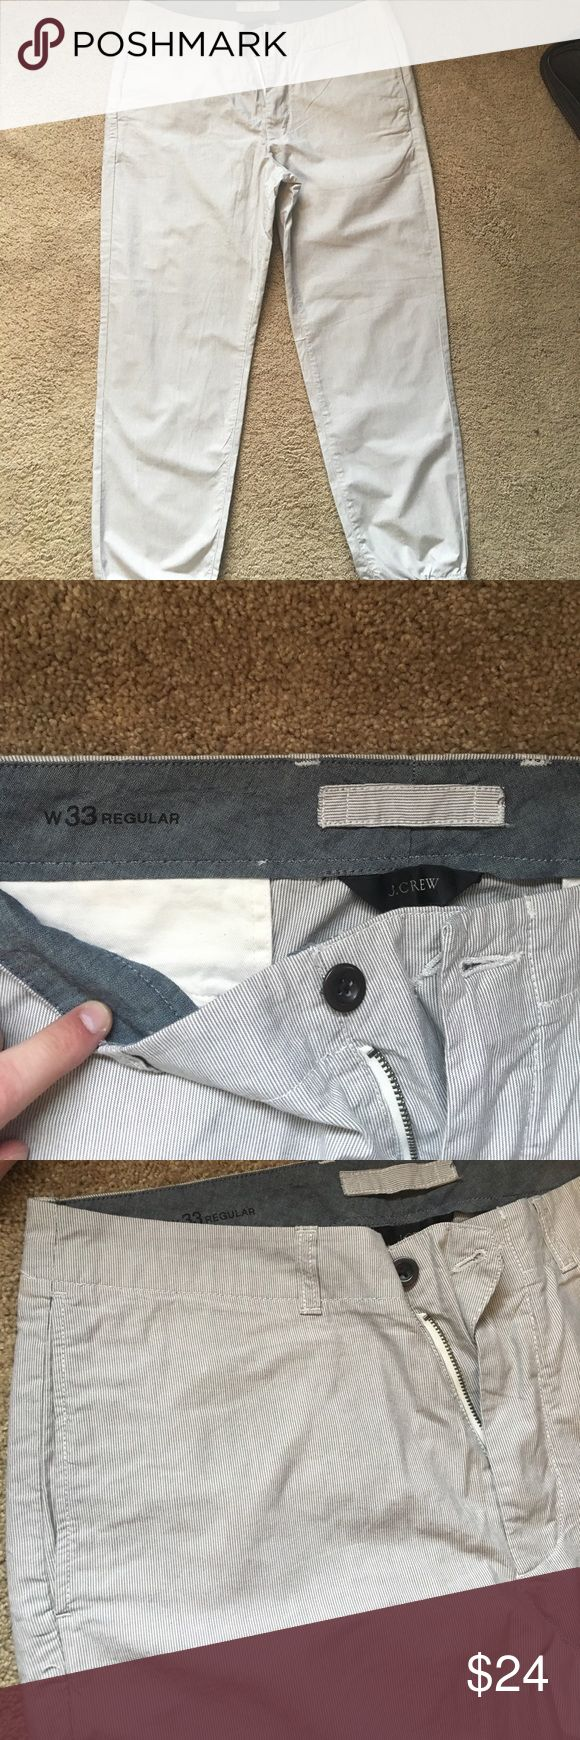 Men's JCrew chino joggers Men's chino joggers, grey stripe. never worn. Waist: 33. J. Crew Pants Sweatpants & Joggers